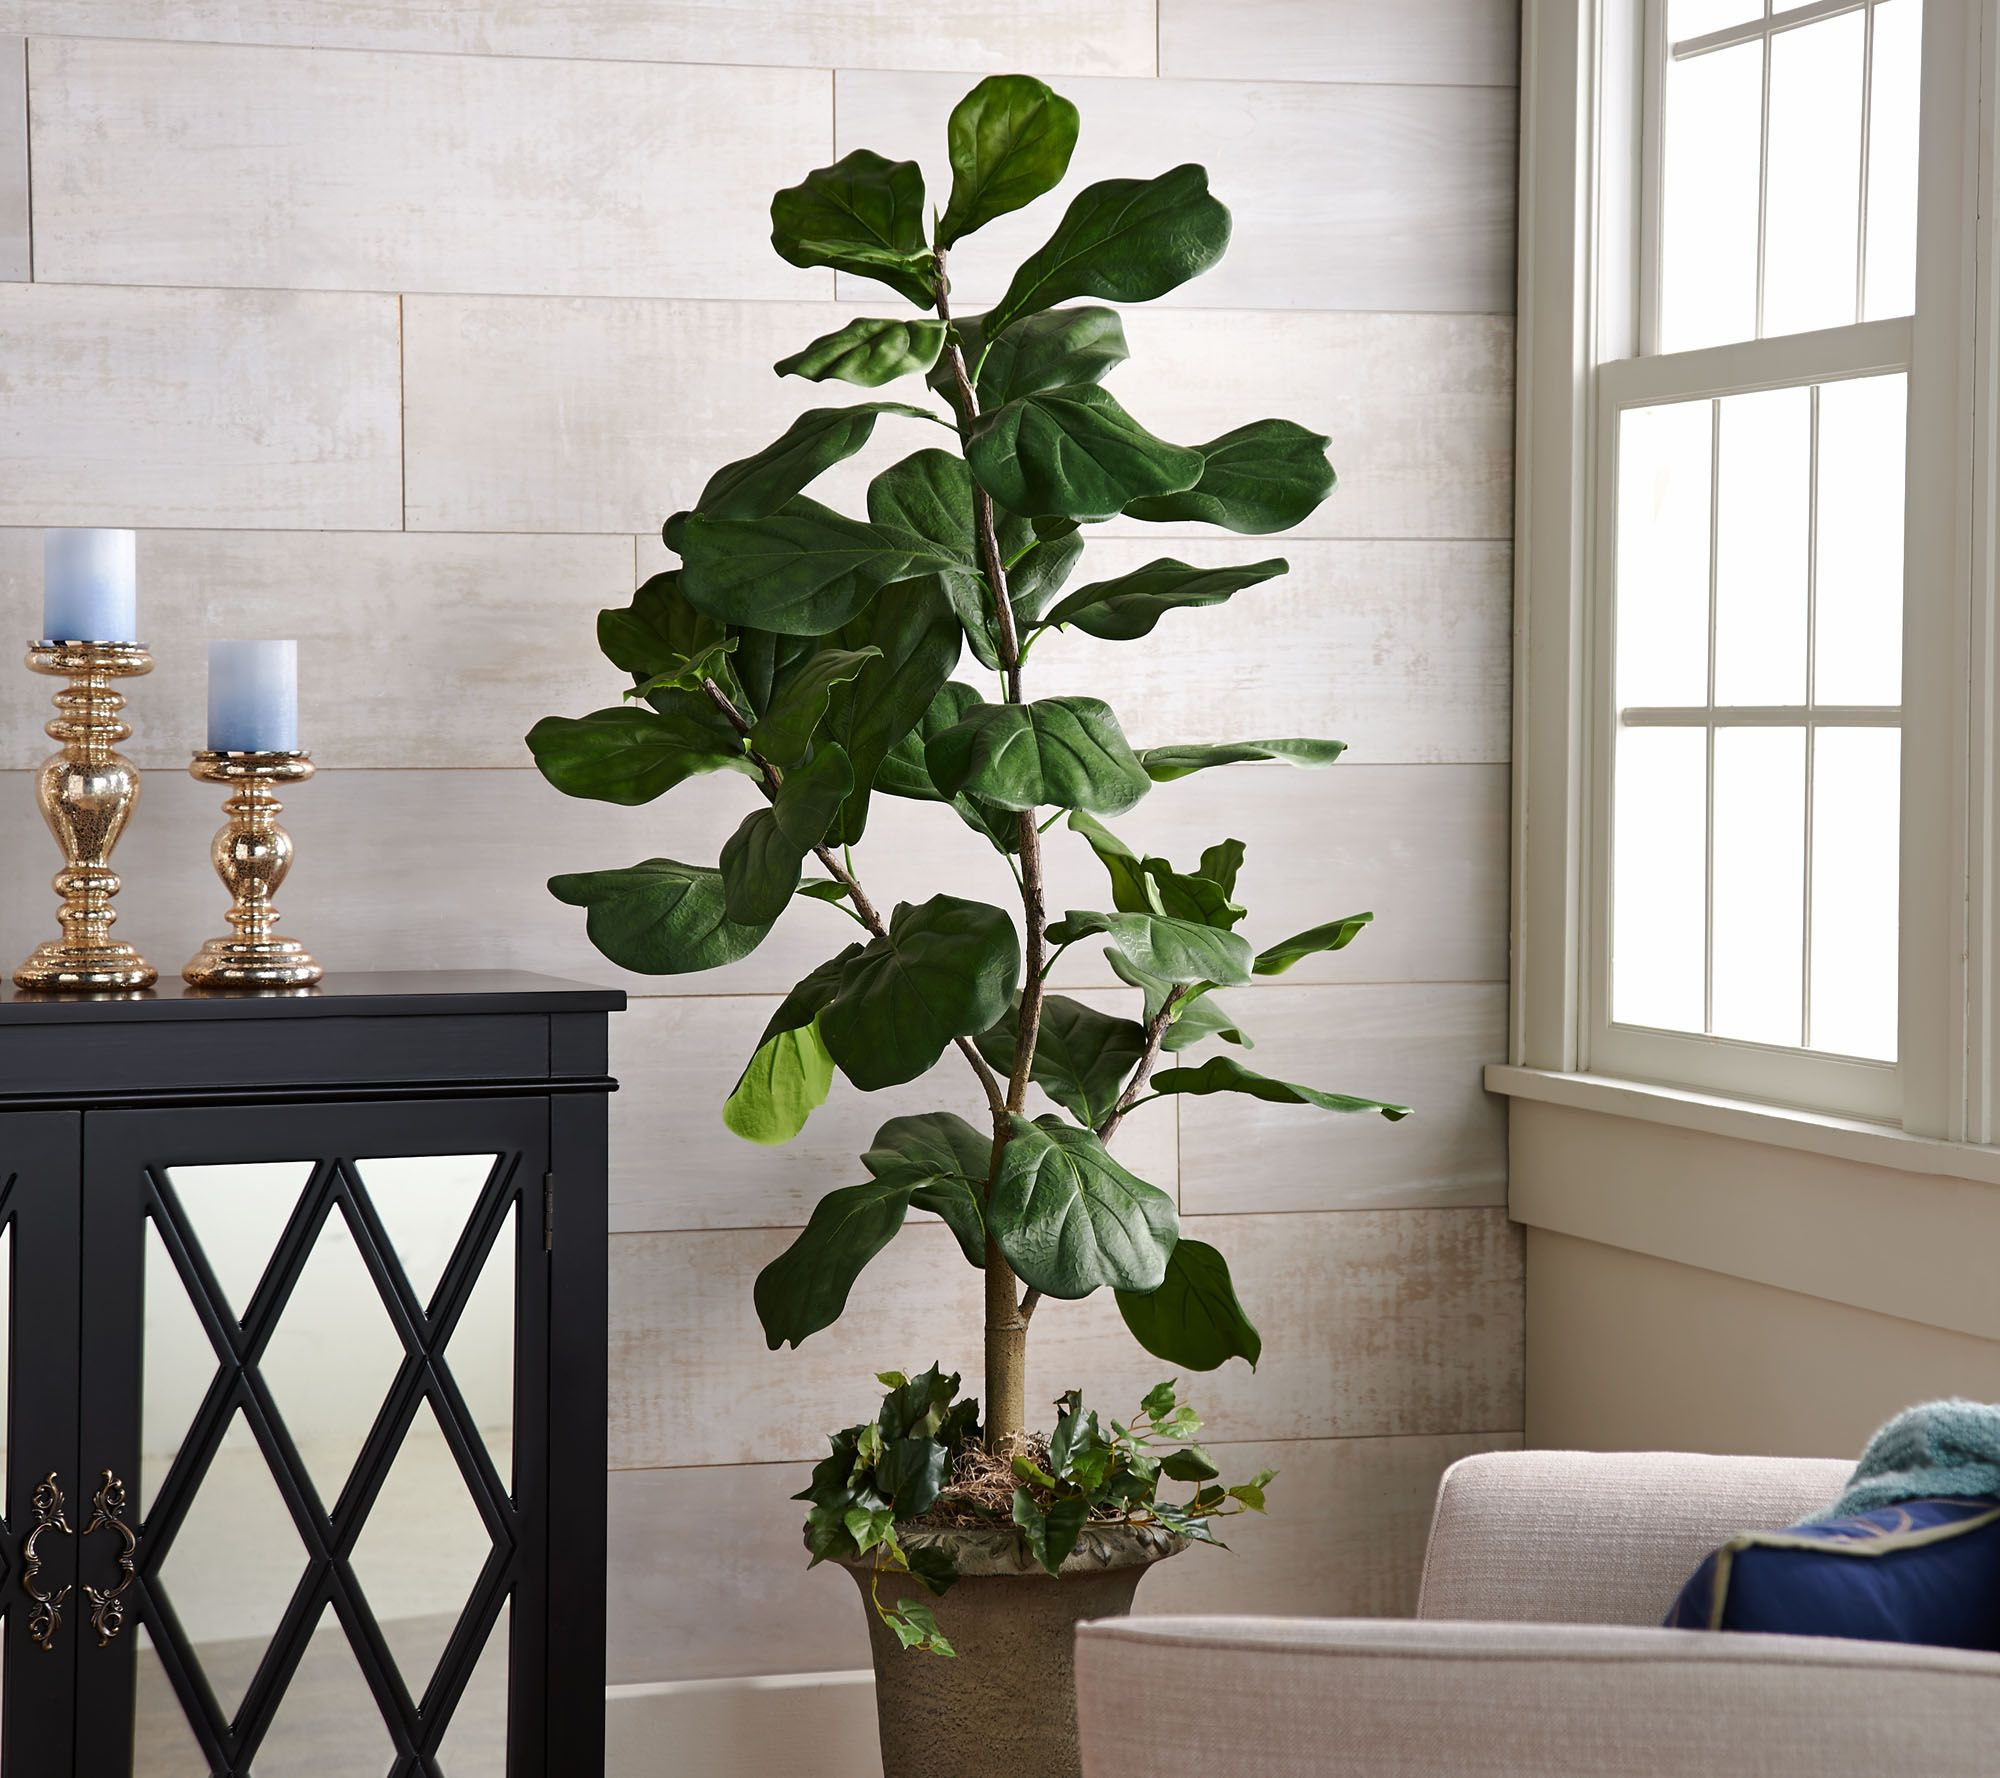 5u0027 Potted Fiddle Leaf Tree In Pot By Valerie   Page 1 U2014 QVC.com